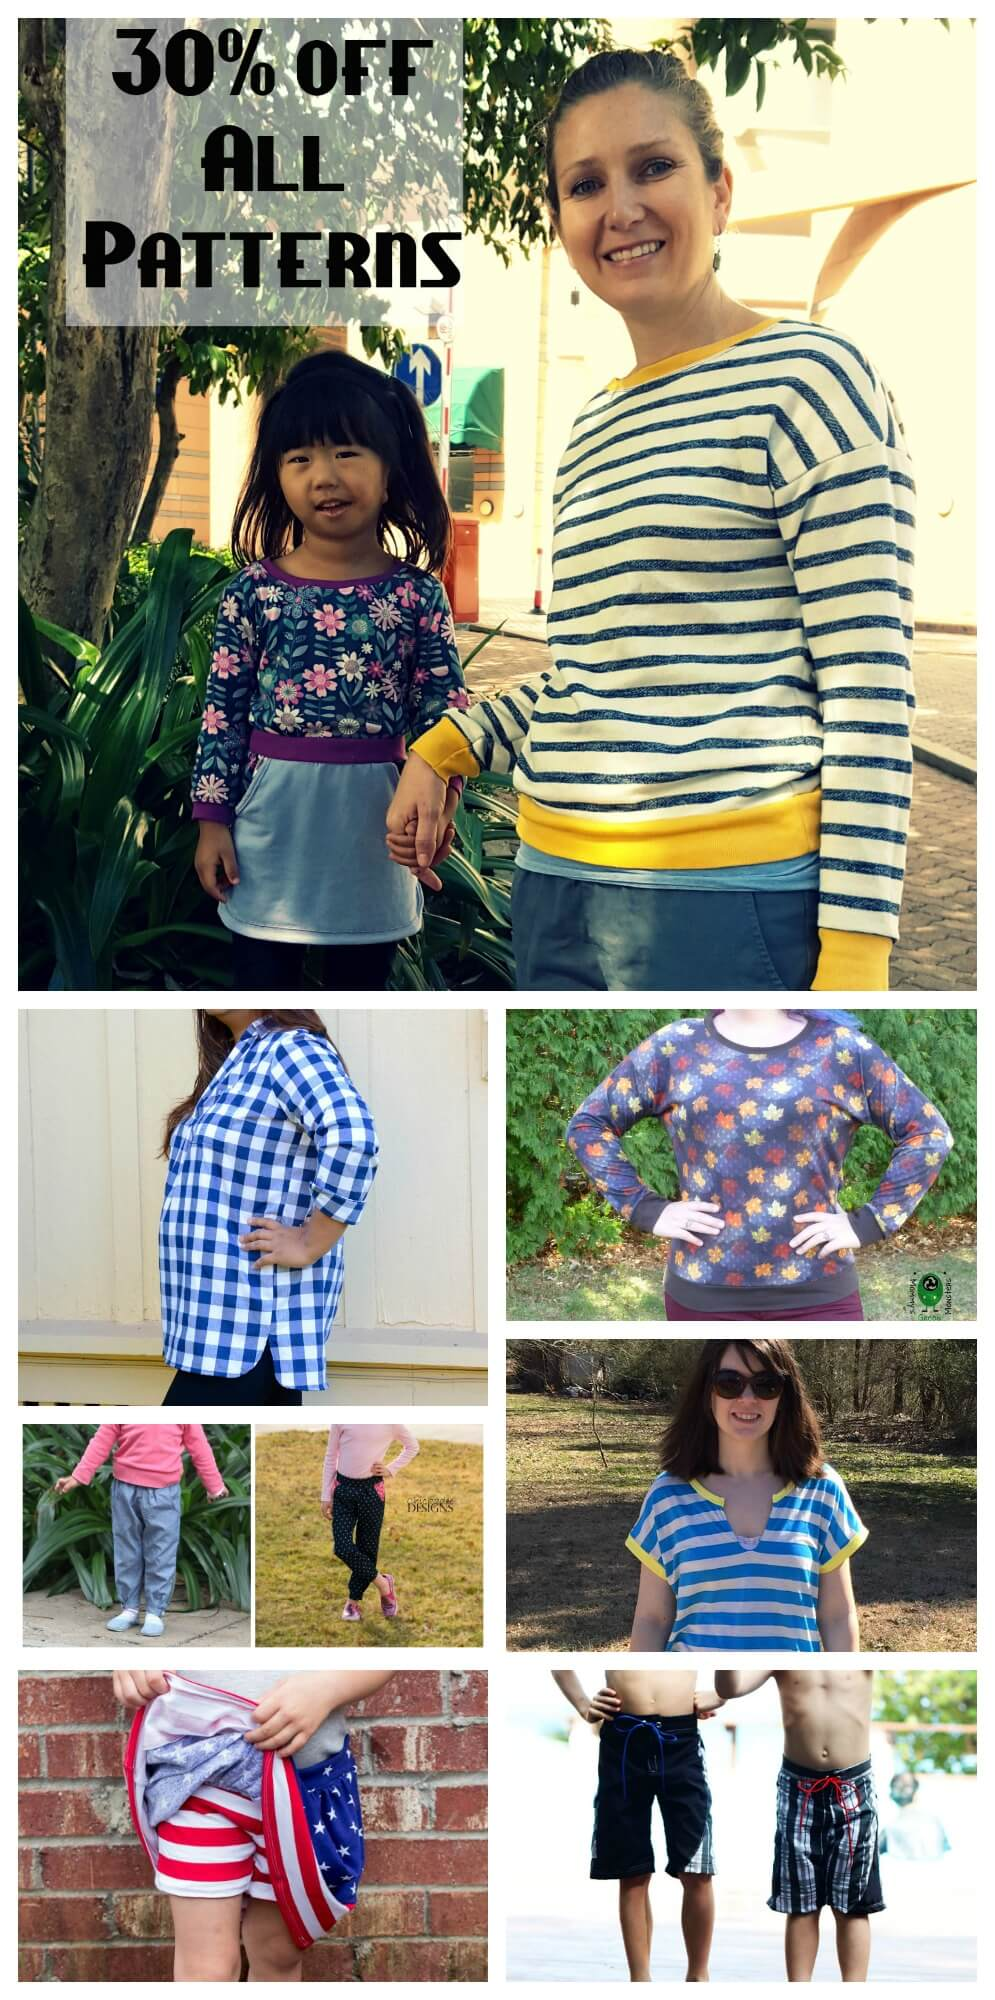 pattern-sale-all patterns 30% off from Nap-Time Creations